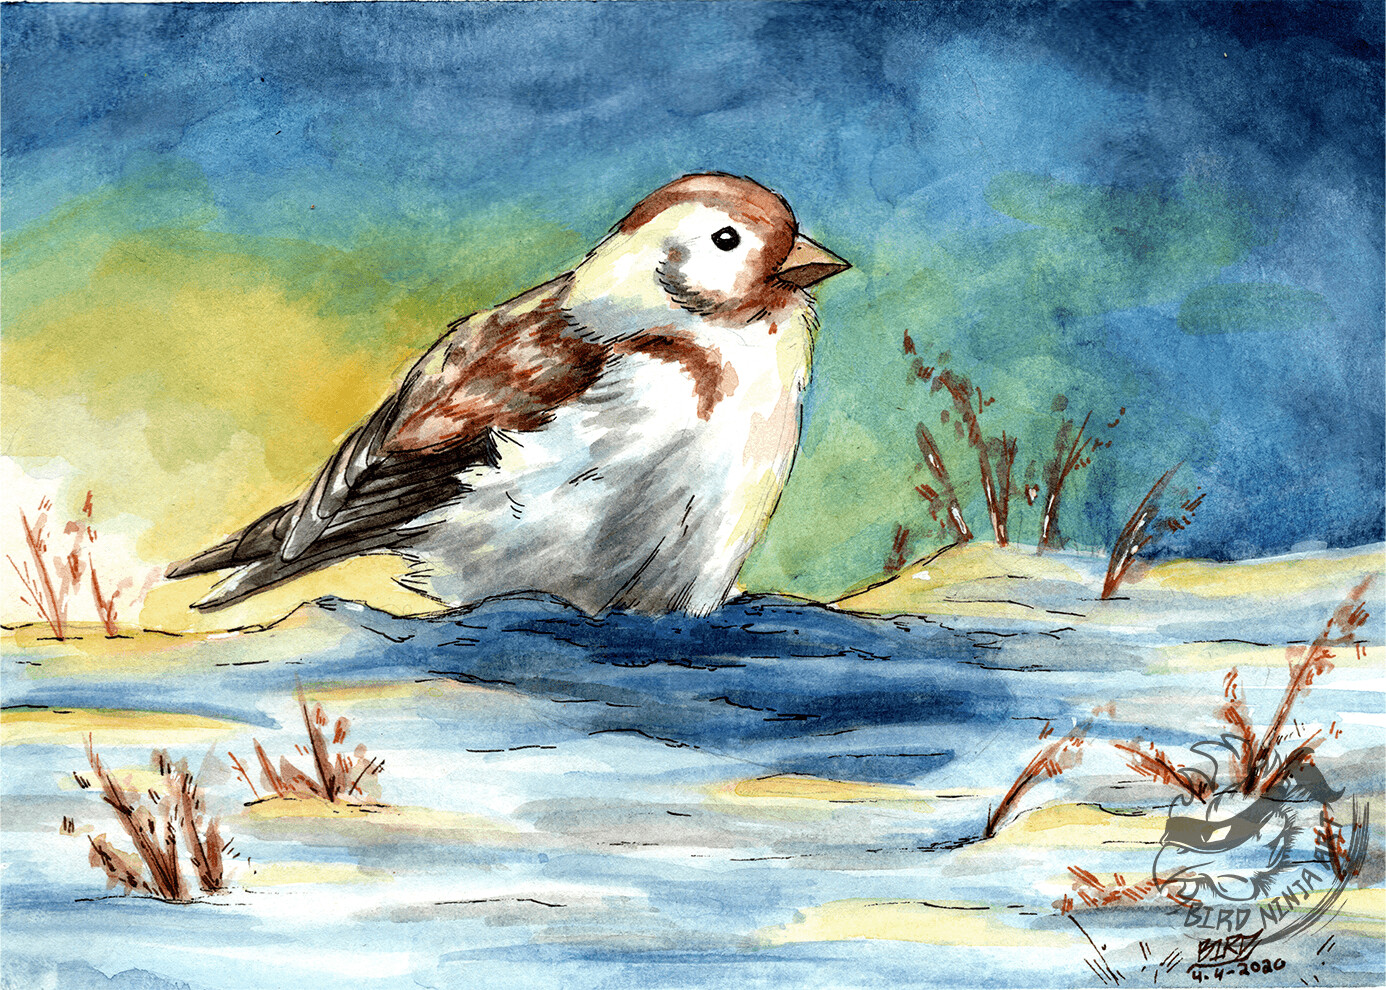 Final Illustration of a Snow Bunting